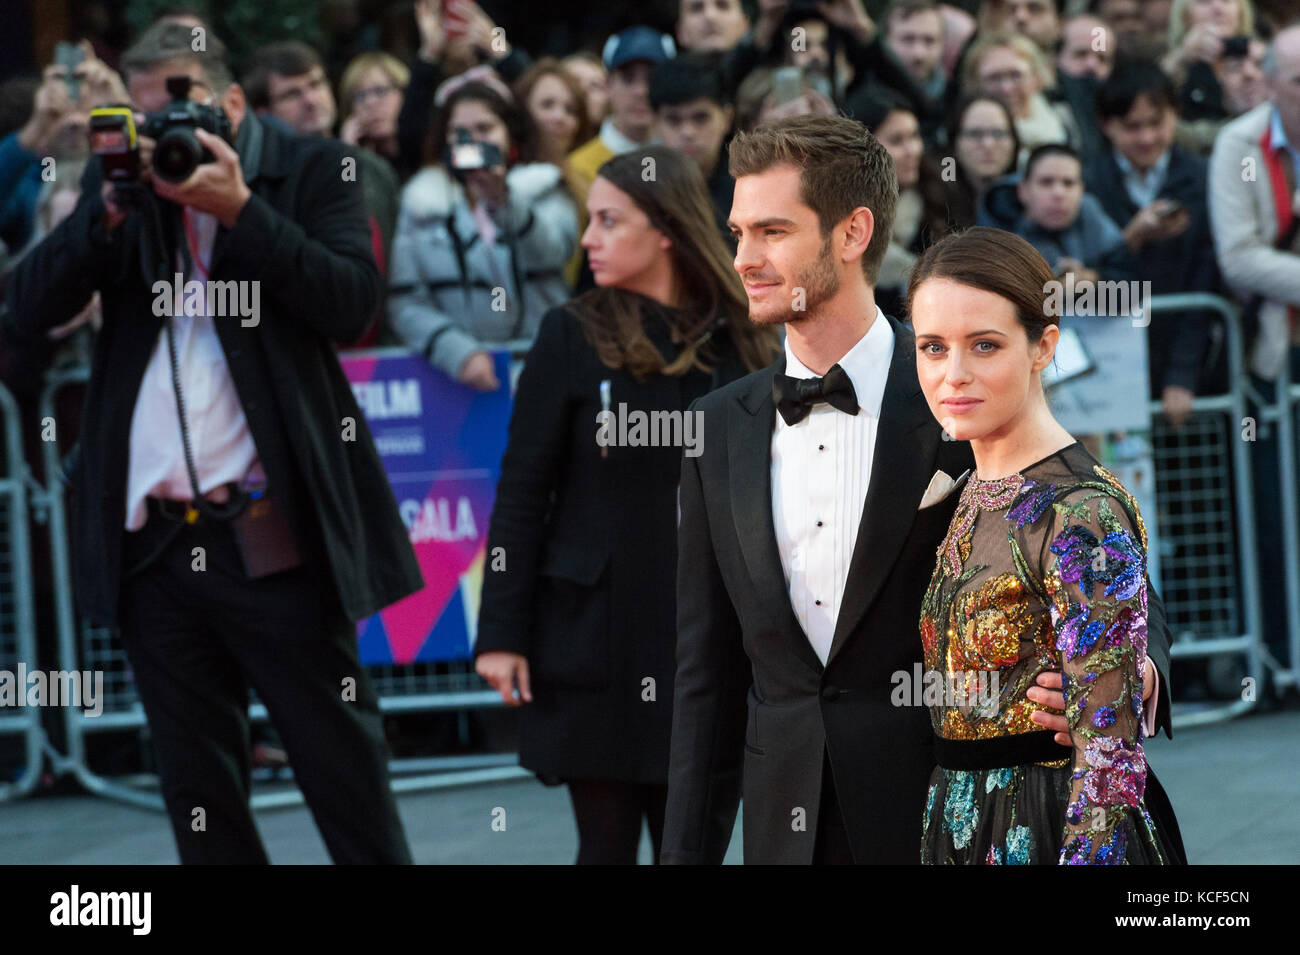 London, UK. 4th October 2017. Claire Foy and Andrew Garfield arrive for the UK film premiere of Breathe at Odeon - Stock Image